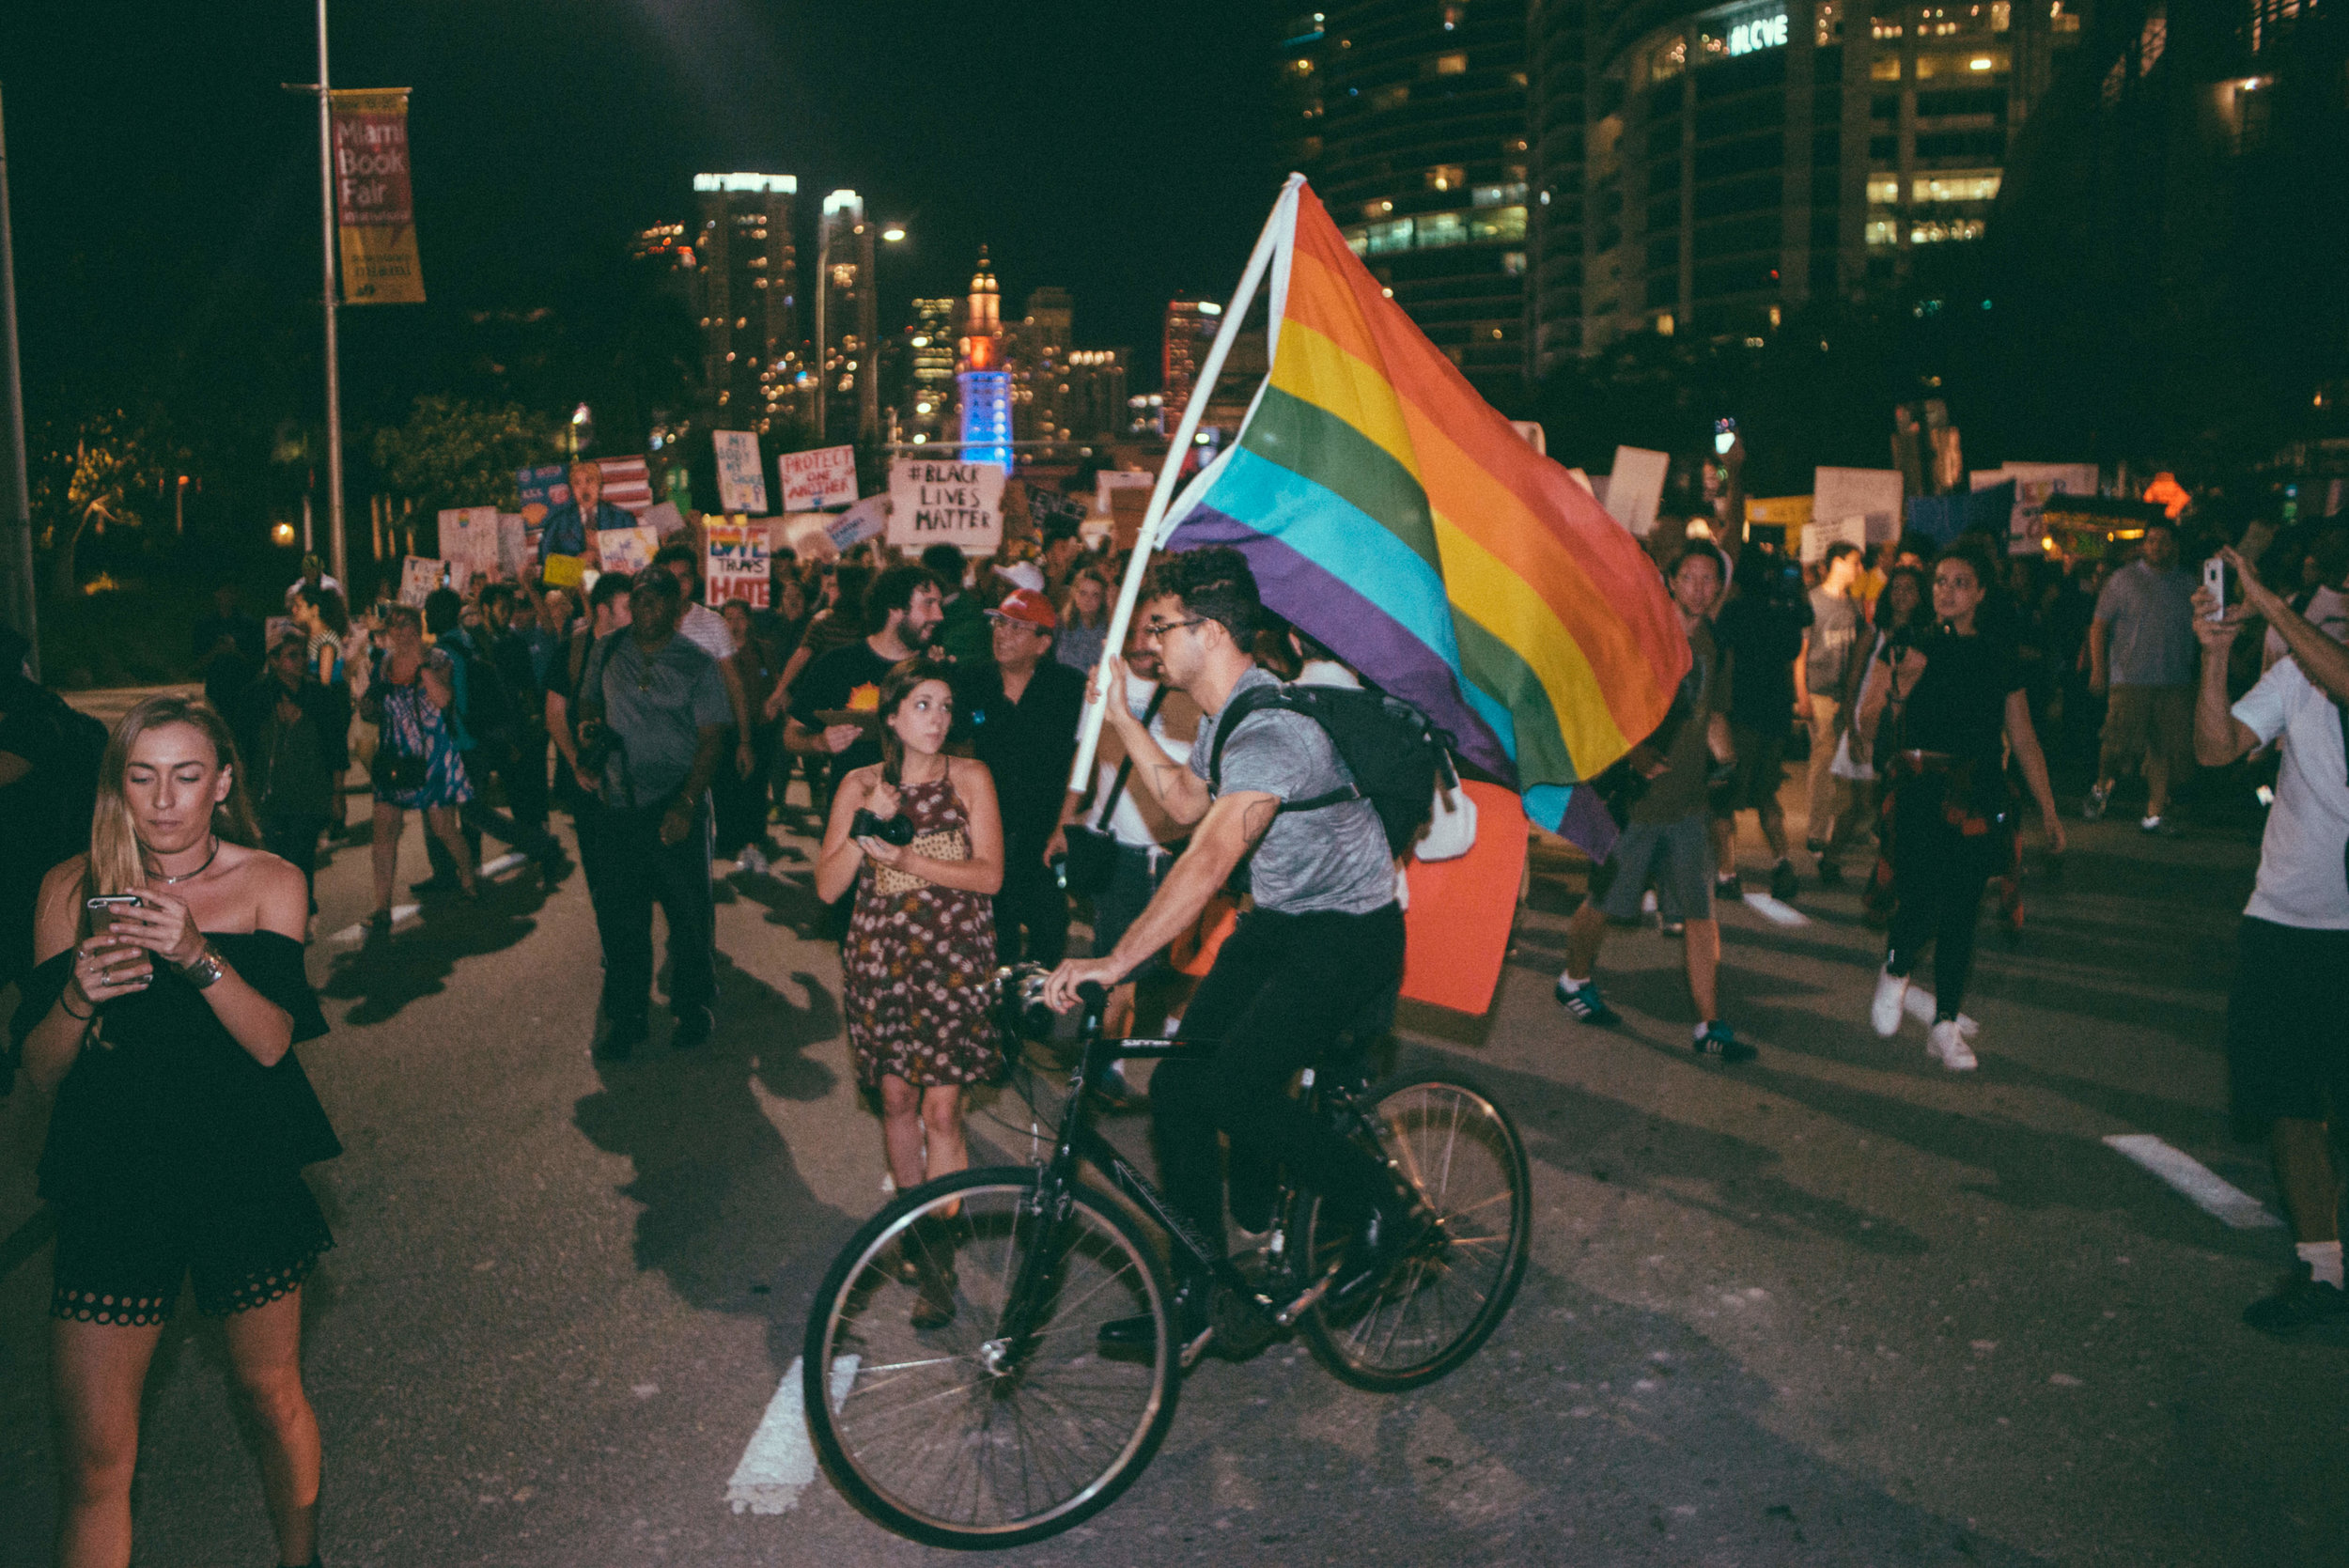 Still one of the most incredible moments in my life going out to Miami and photographing history. This guy was riding his bike with a pride flag, it was at this very moment when I realzied I had lost my phone.